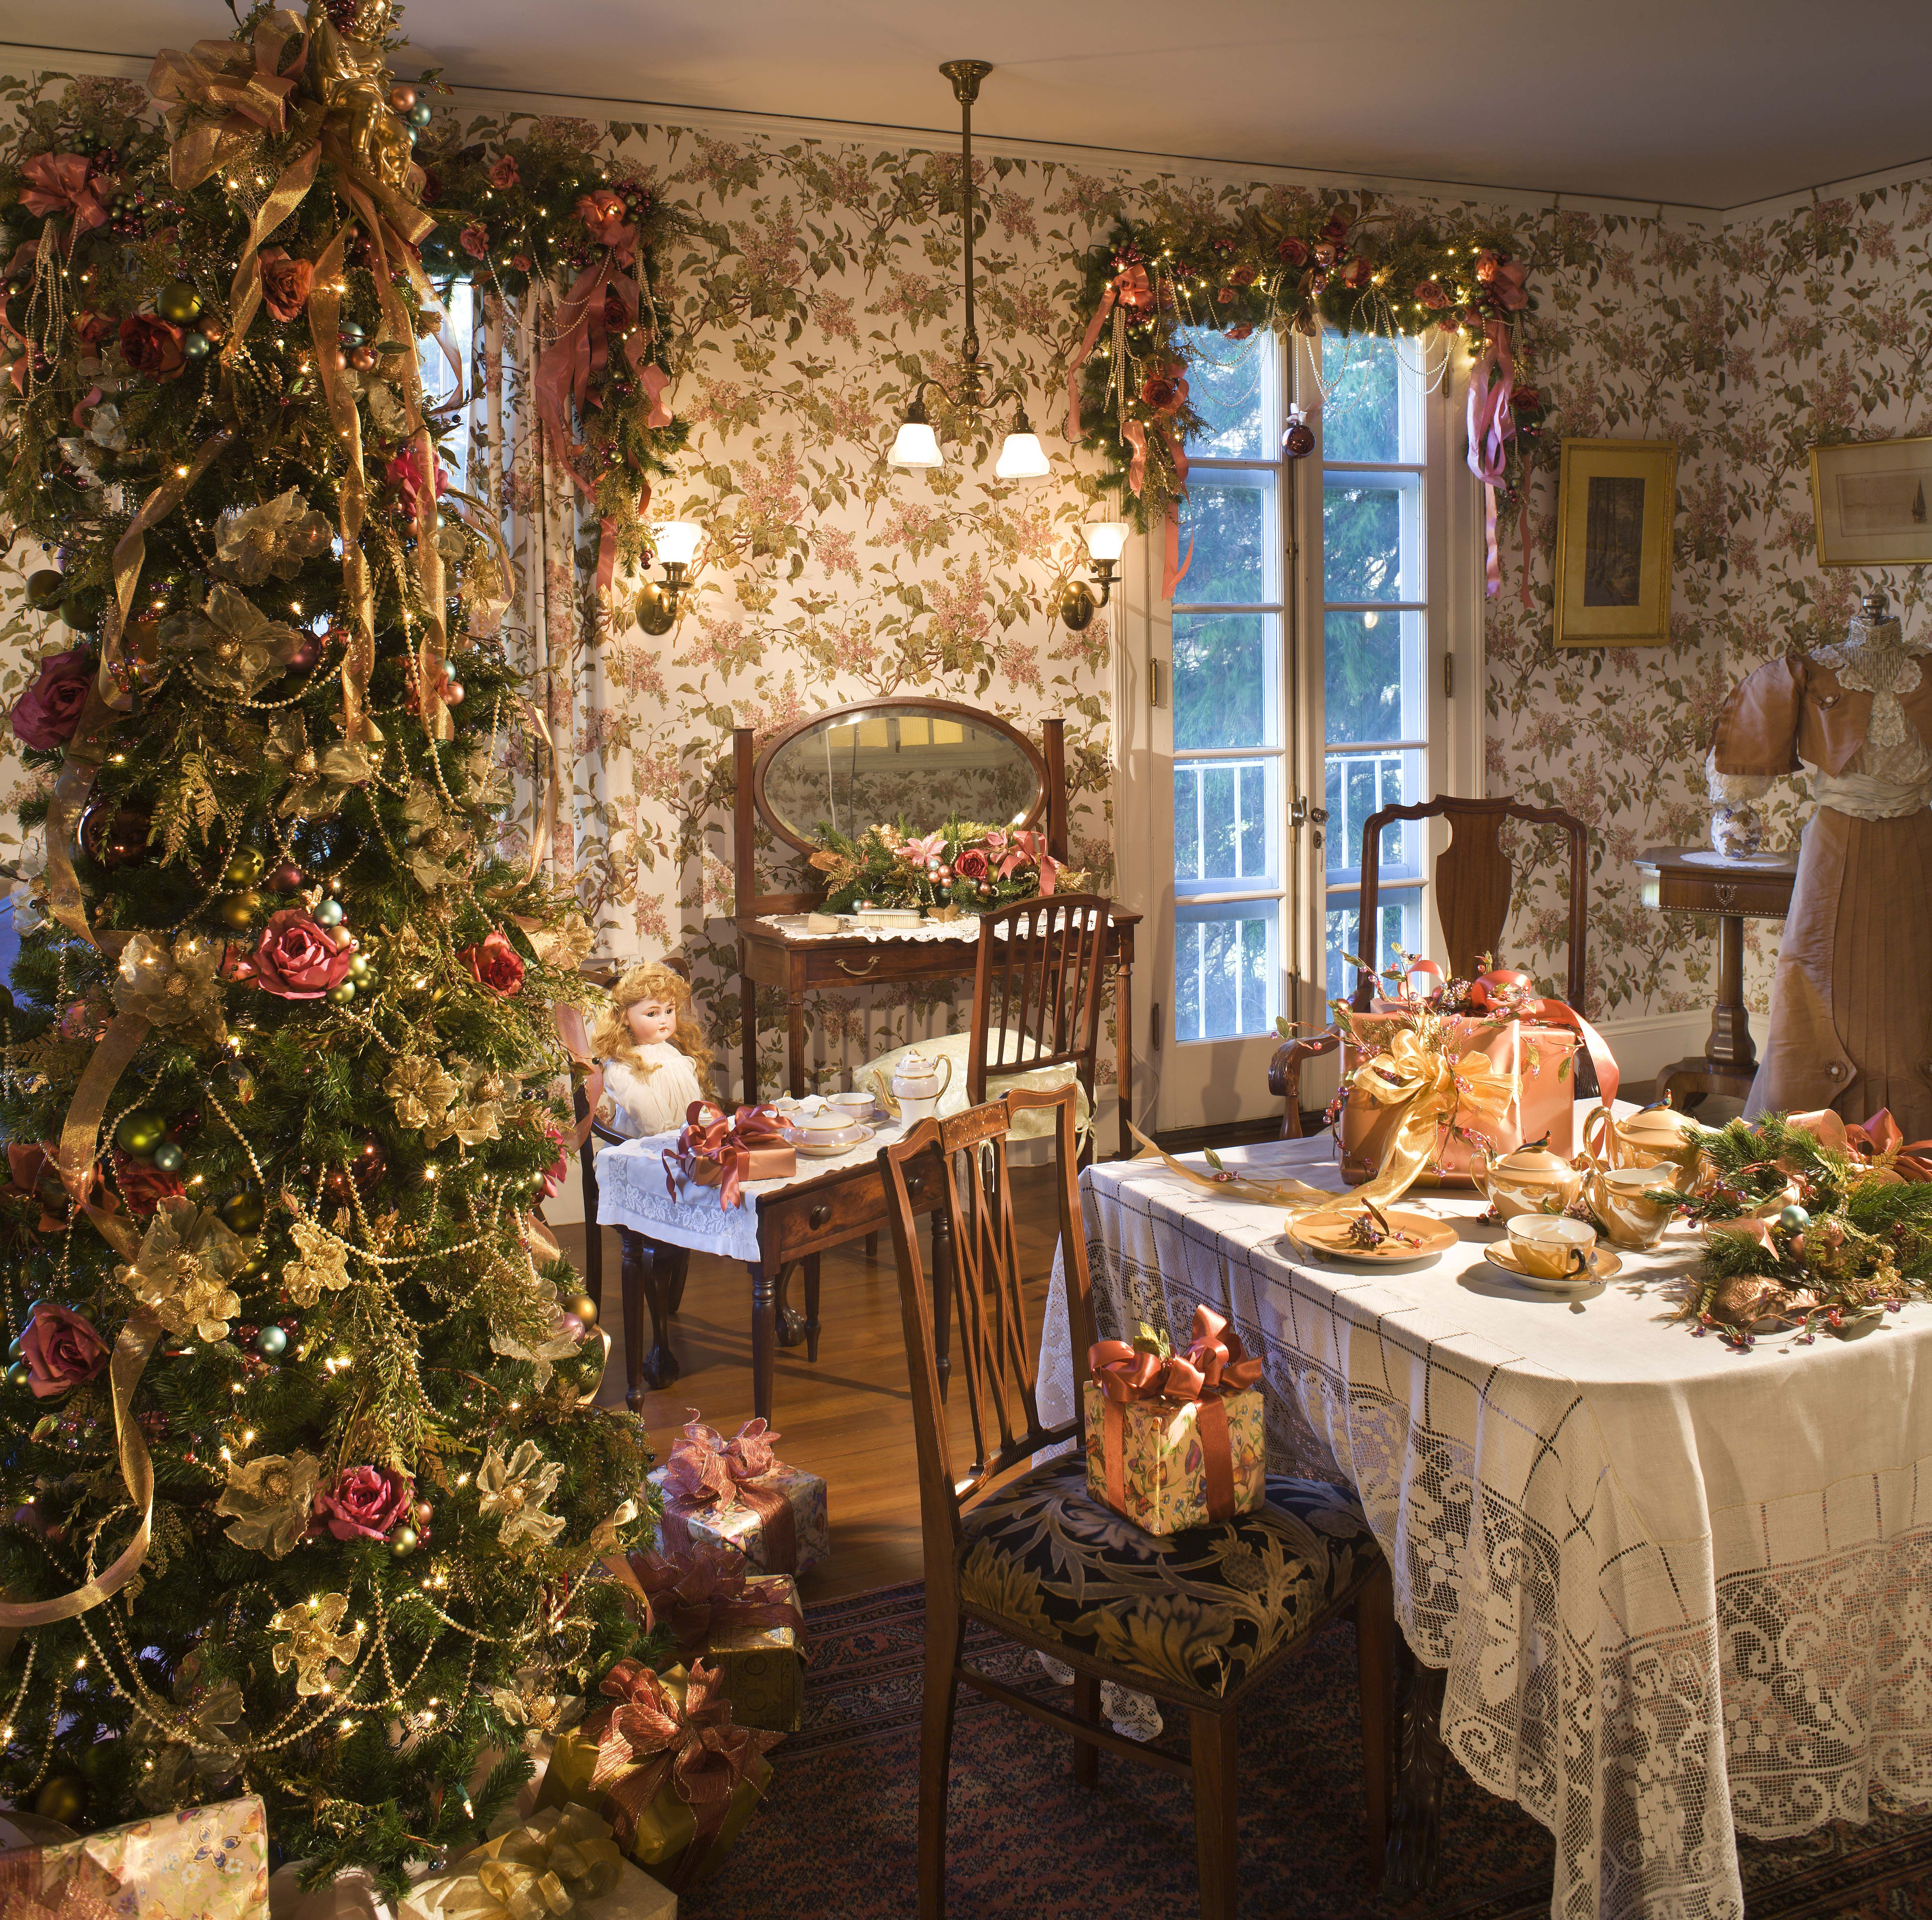 The bedrooms at Blithewold Mansion are decked out in Christmas cheer ...